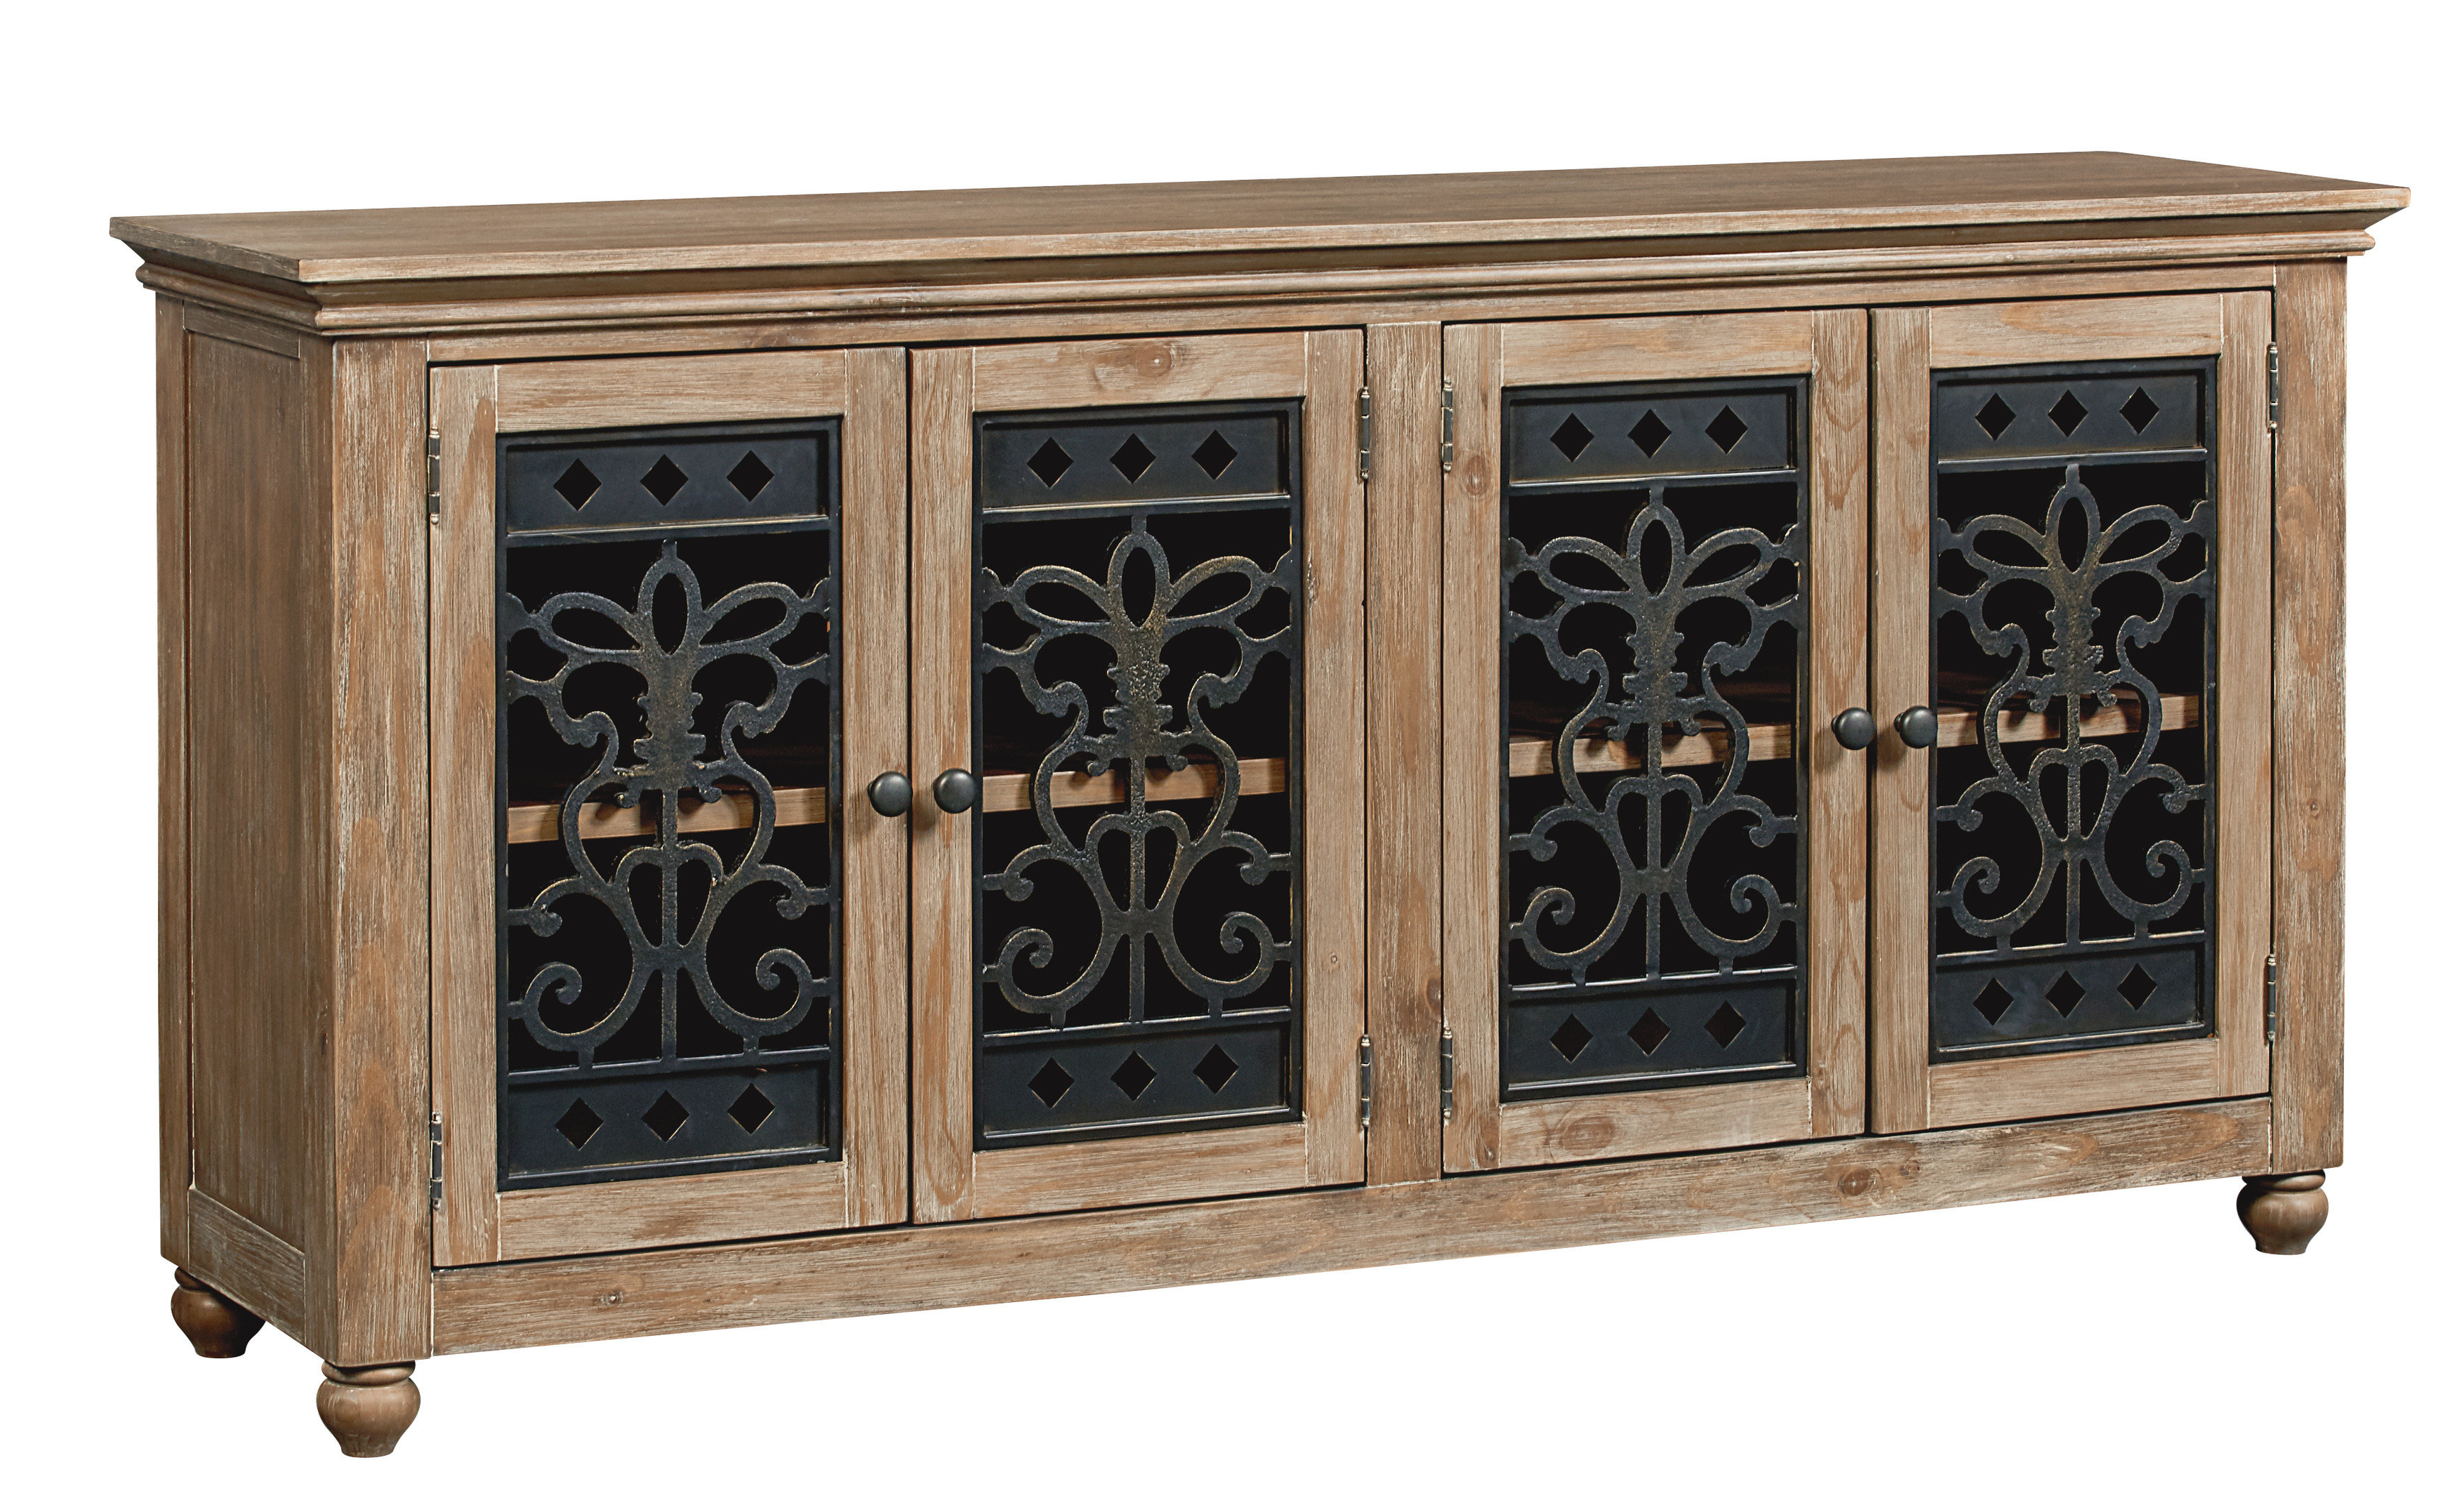 Basco Buffet Table & Reviews | Joss & Main Intended For Stillwater Sideboards (View 10 of 20)